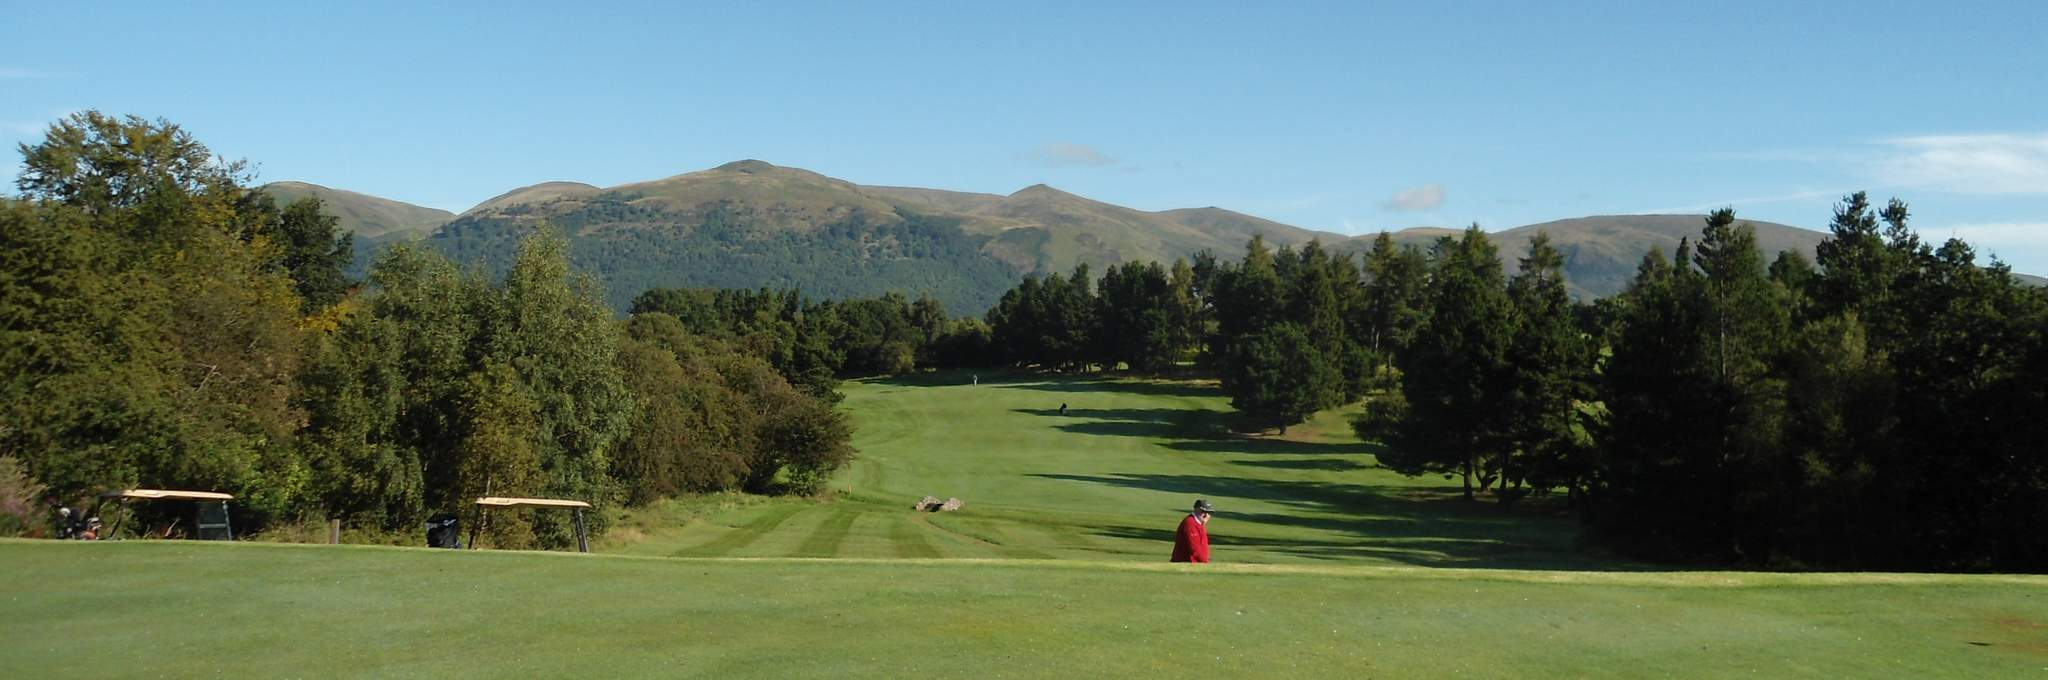 Golf in Argyll, The Isles, Loch Lomond, Stirling and The Forth Valley